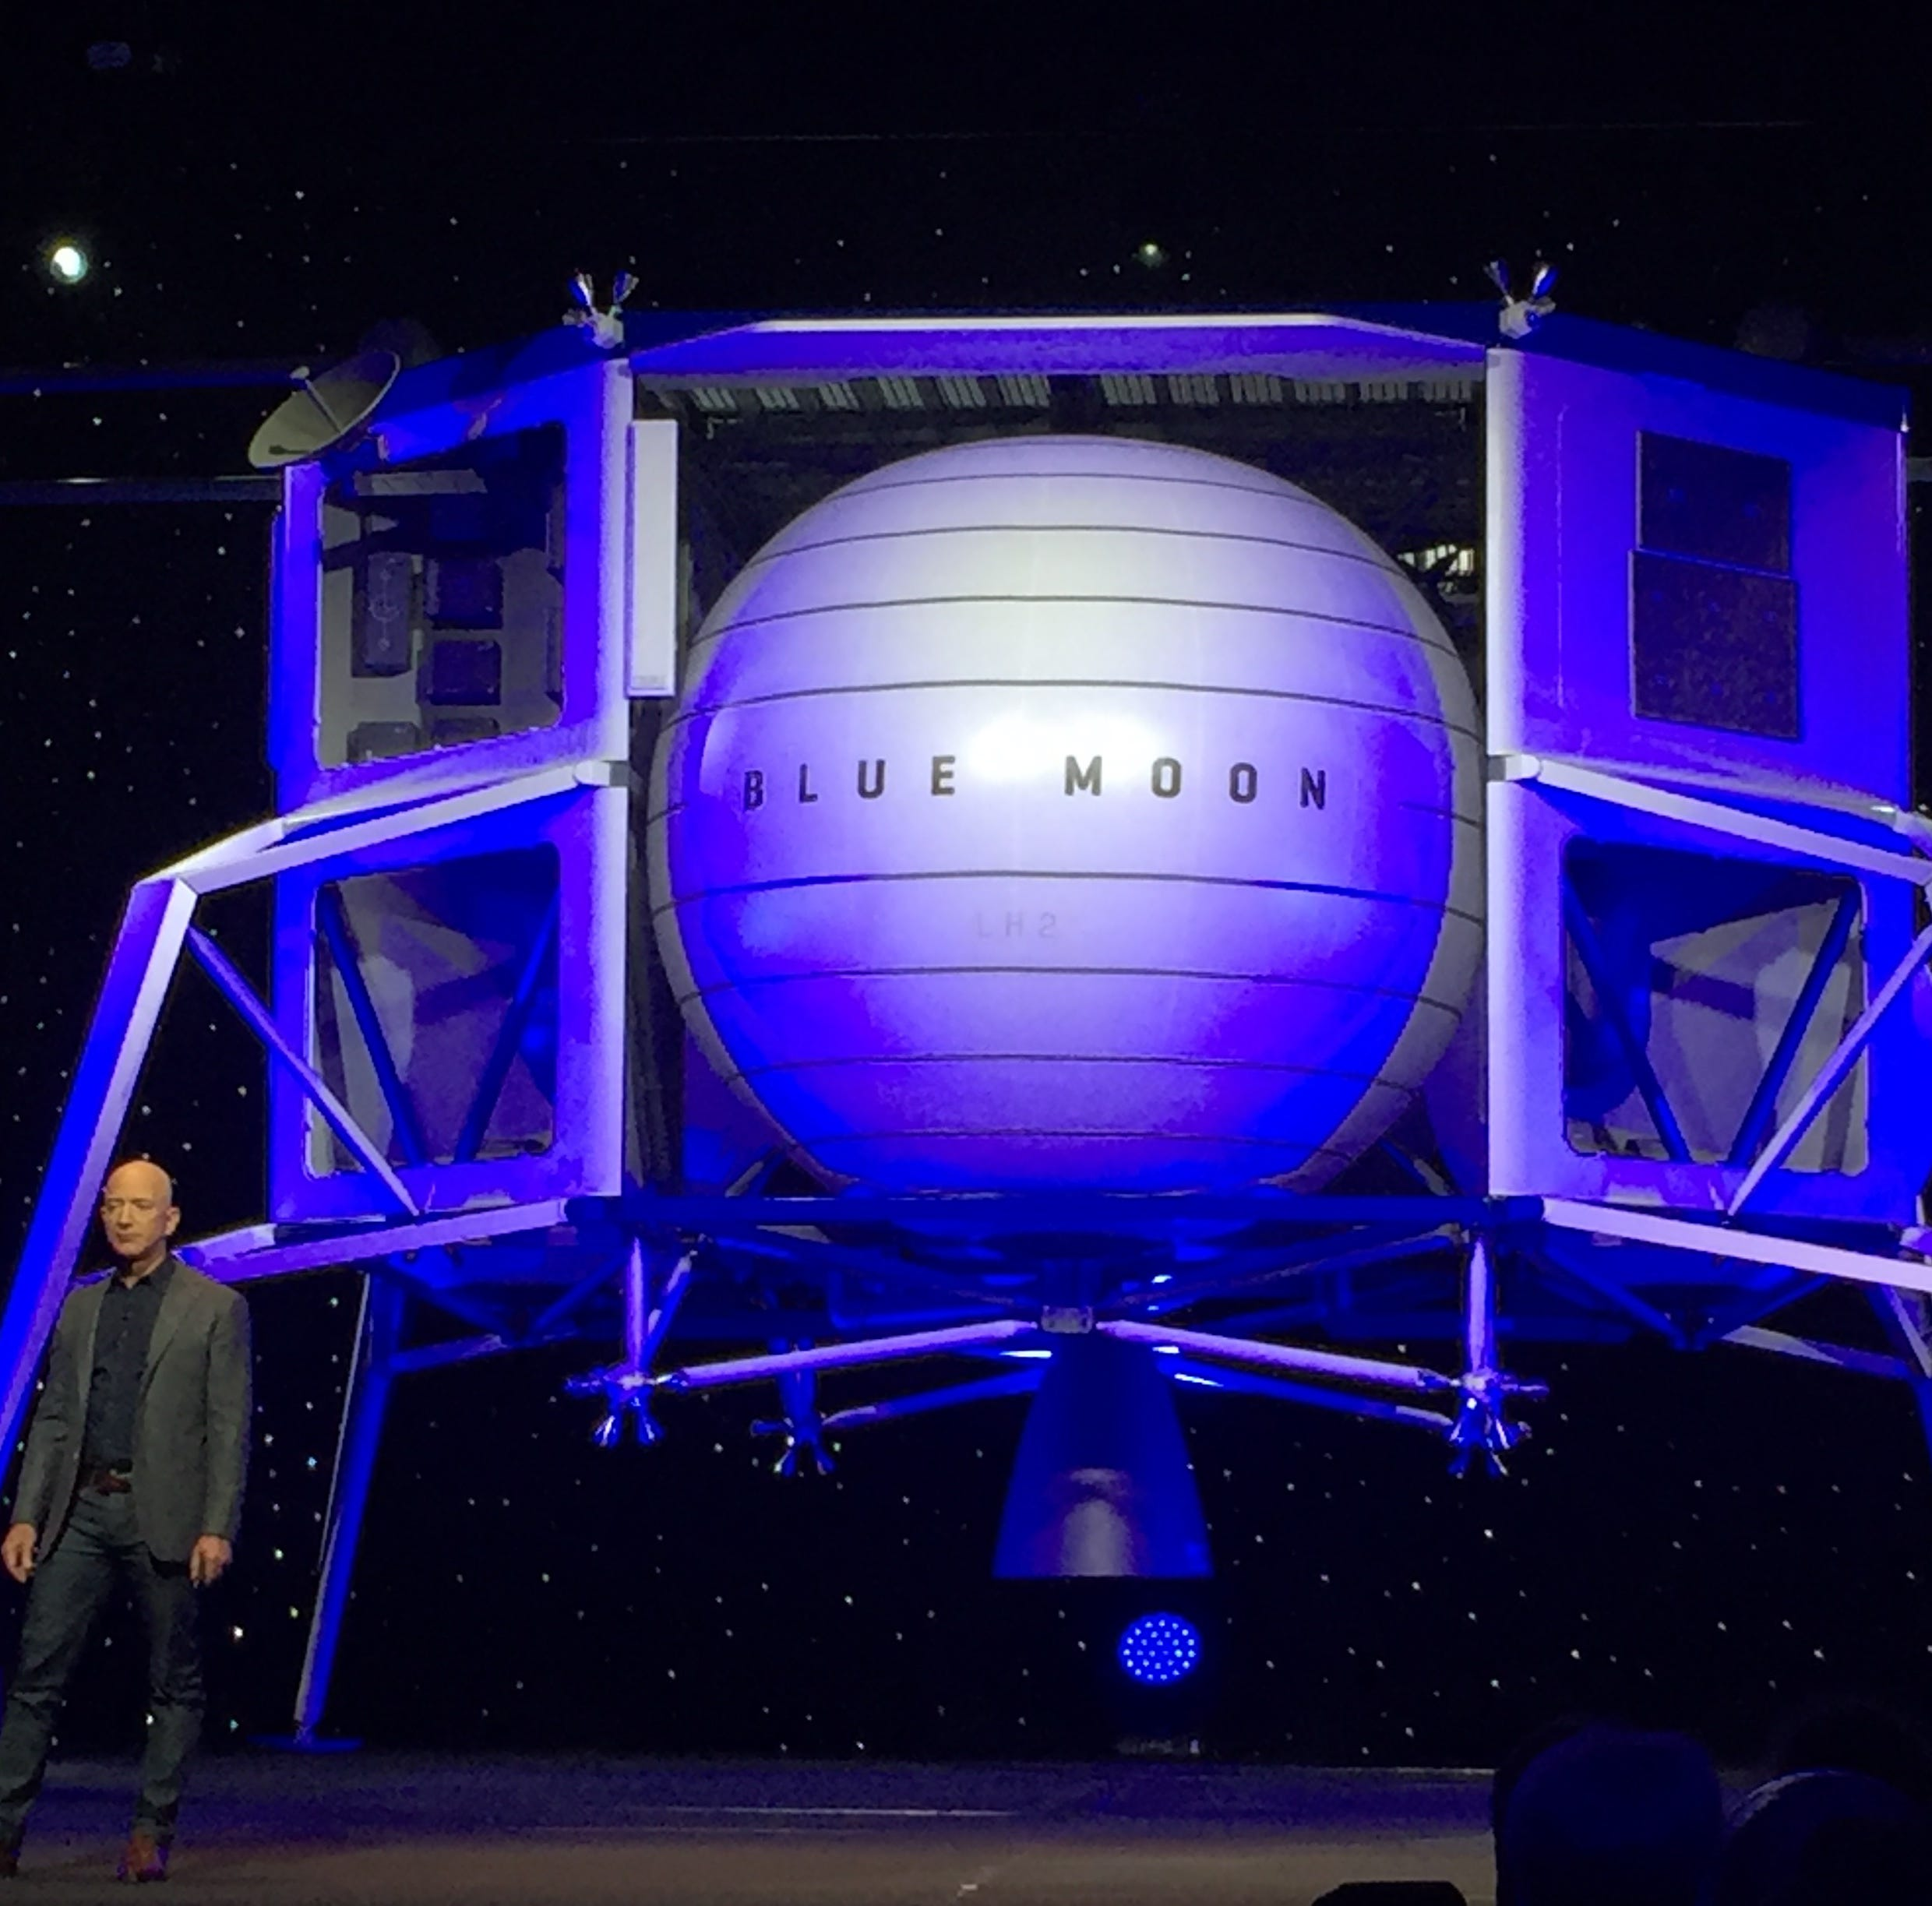 Jeff Bezos unveils Blue Moon, his vision for lunar landing missions